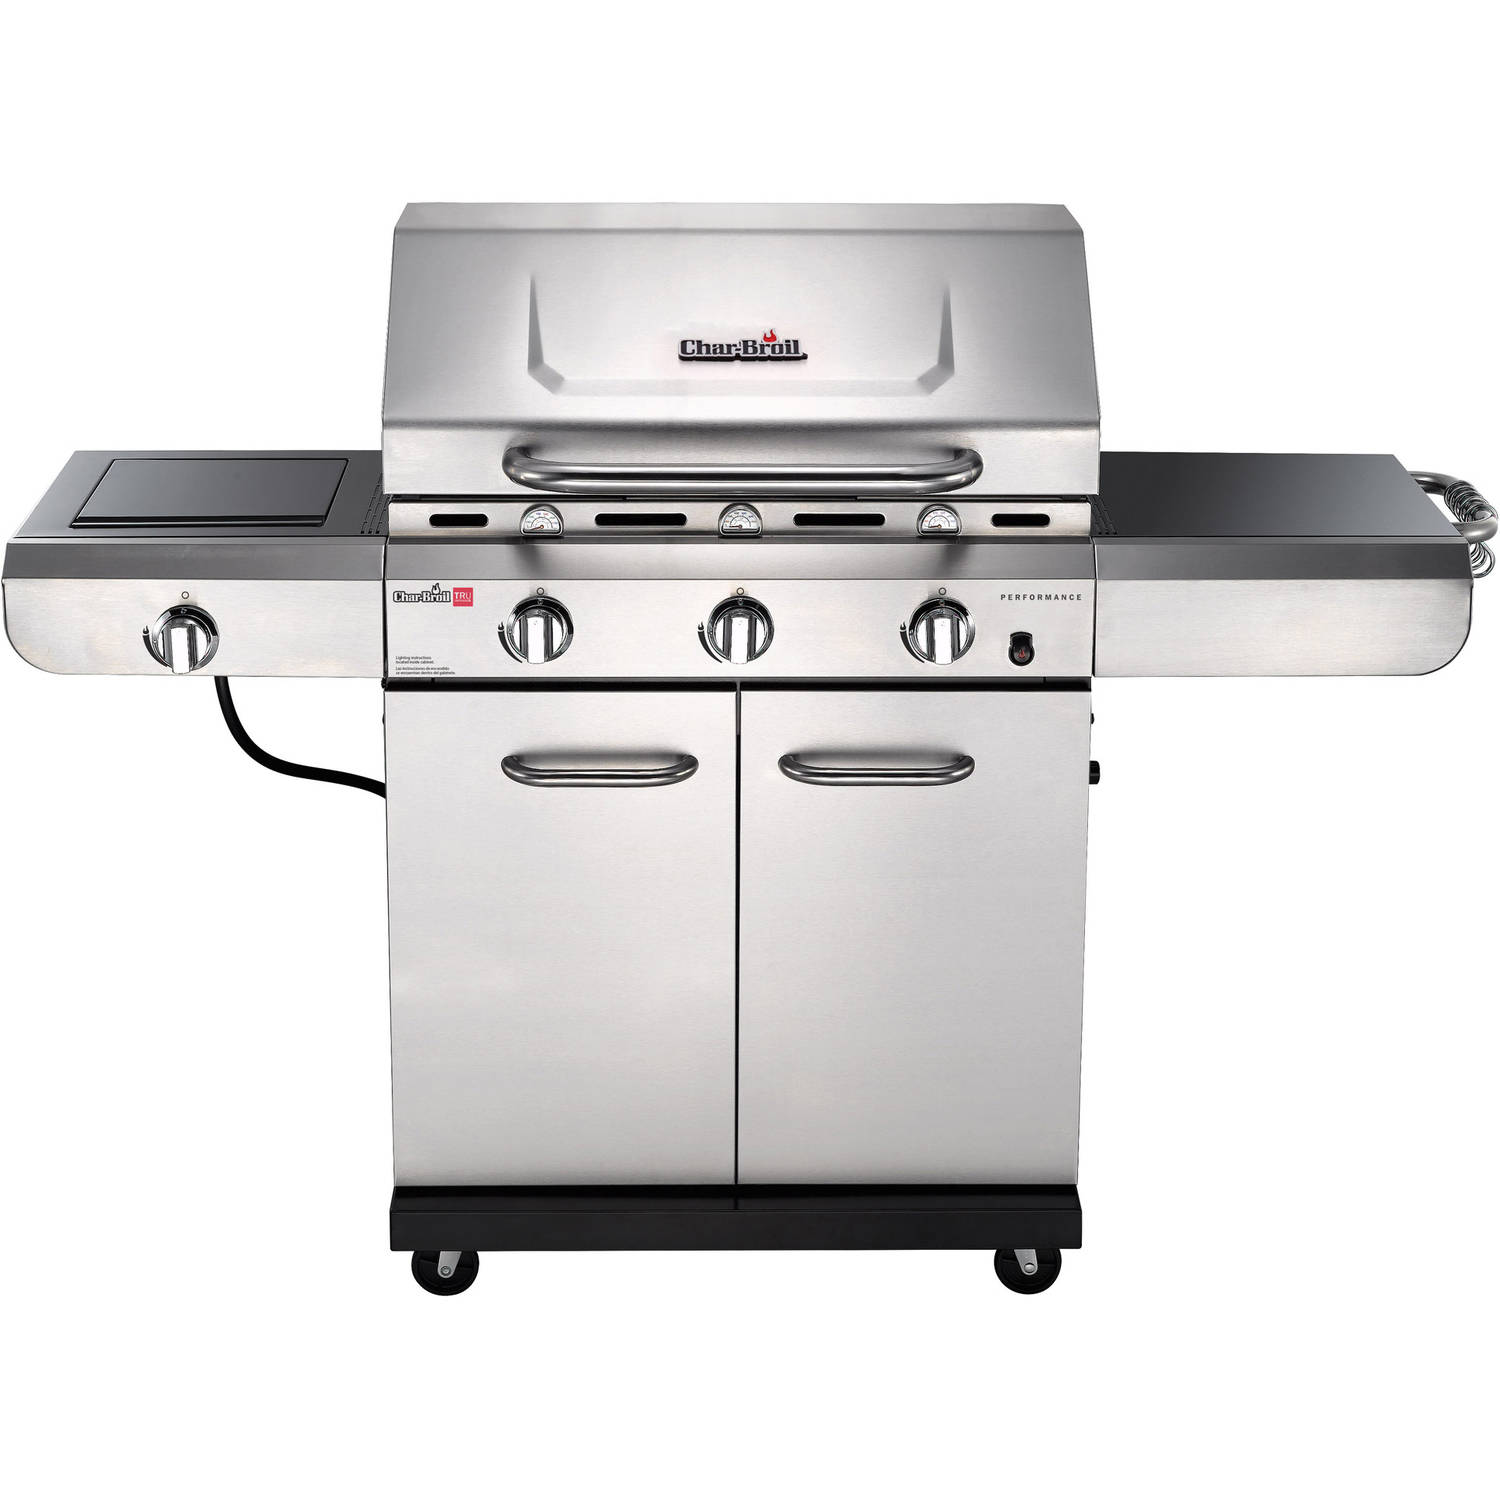 grillin product g infrared tec fr cart just sport grills stainless pedestal grill